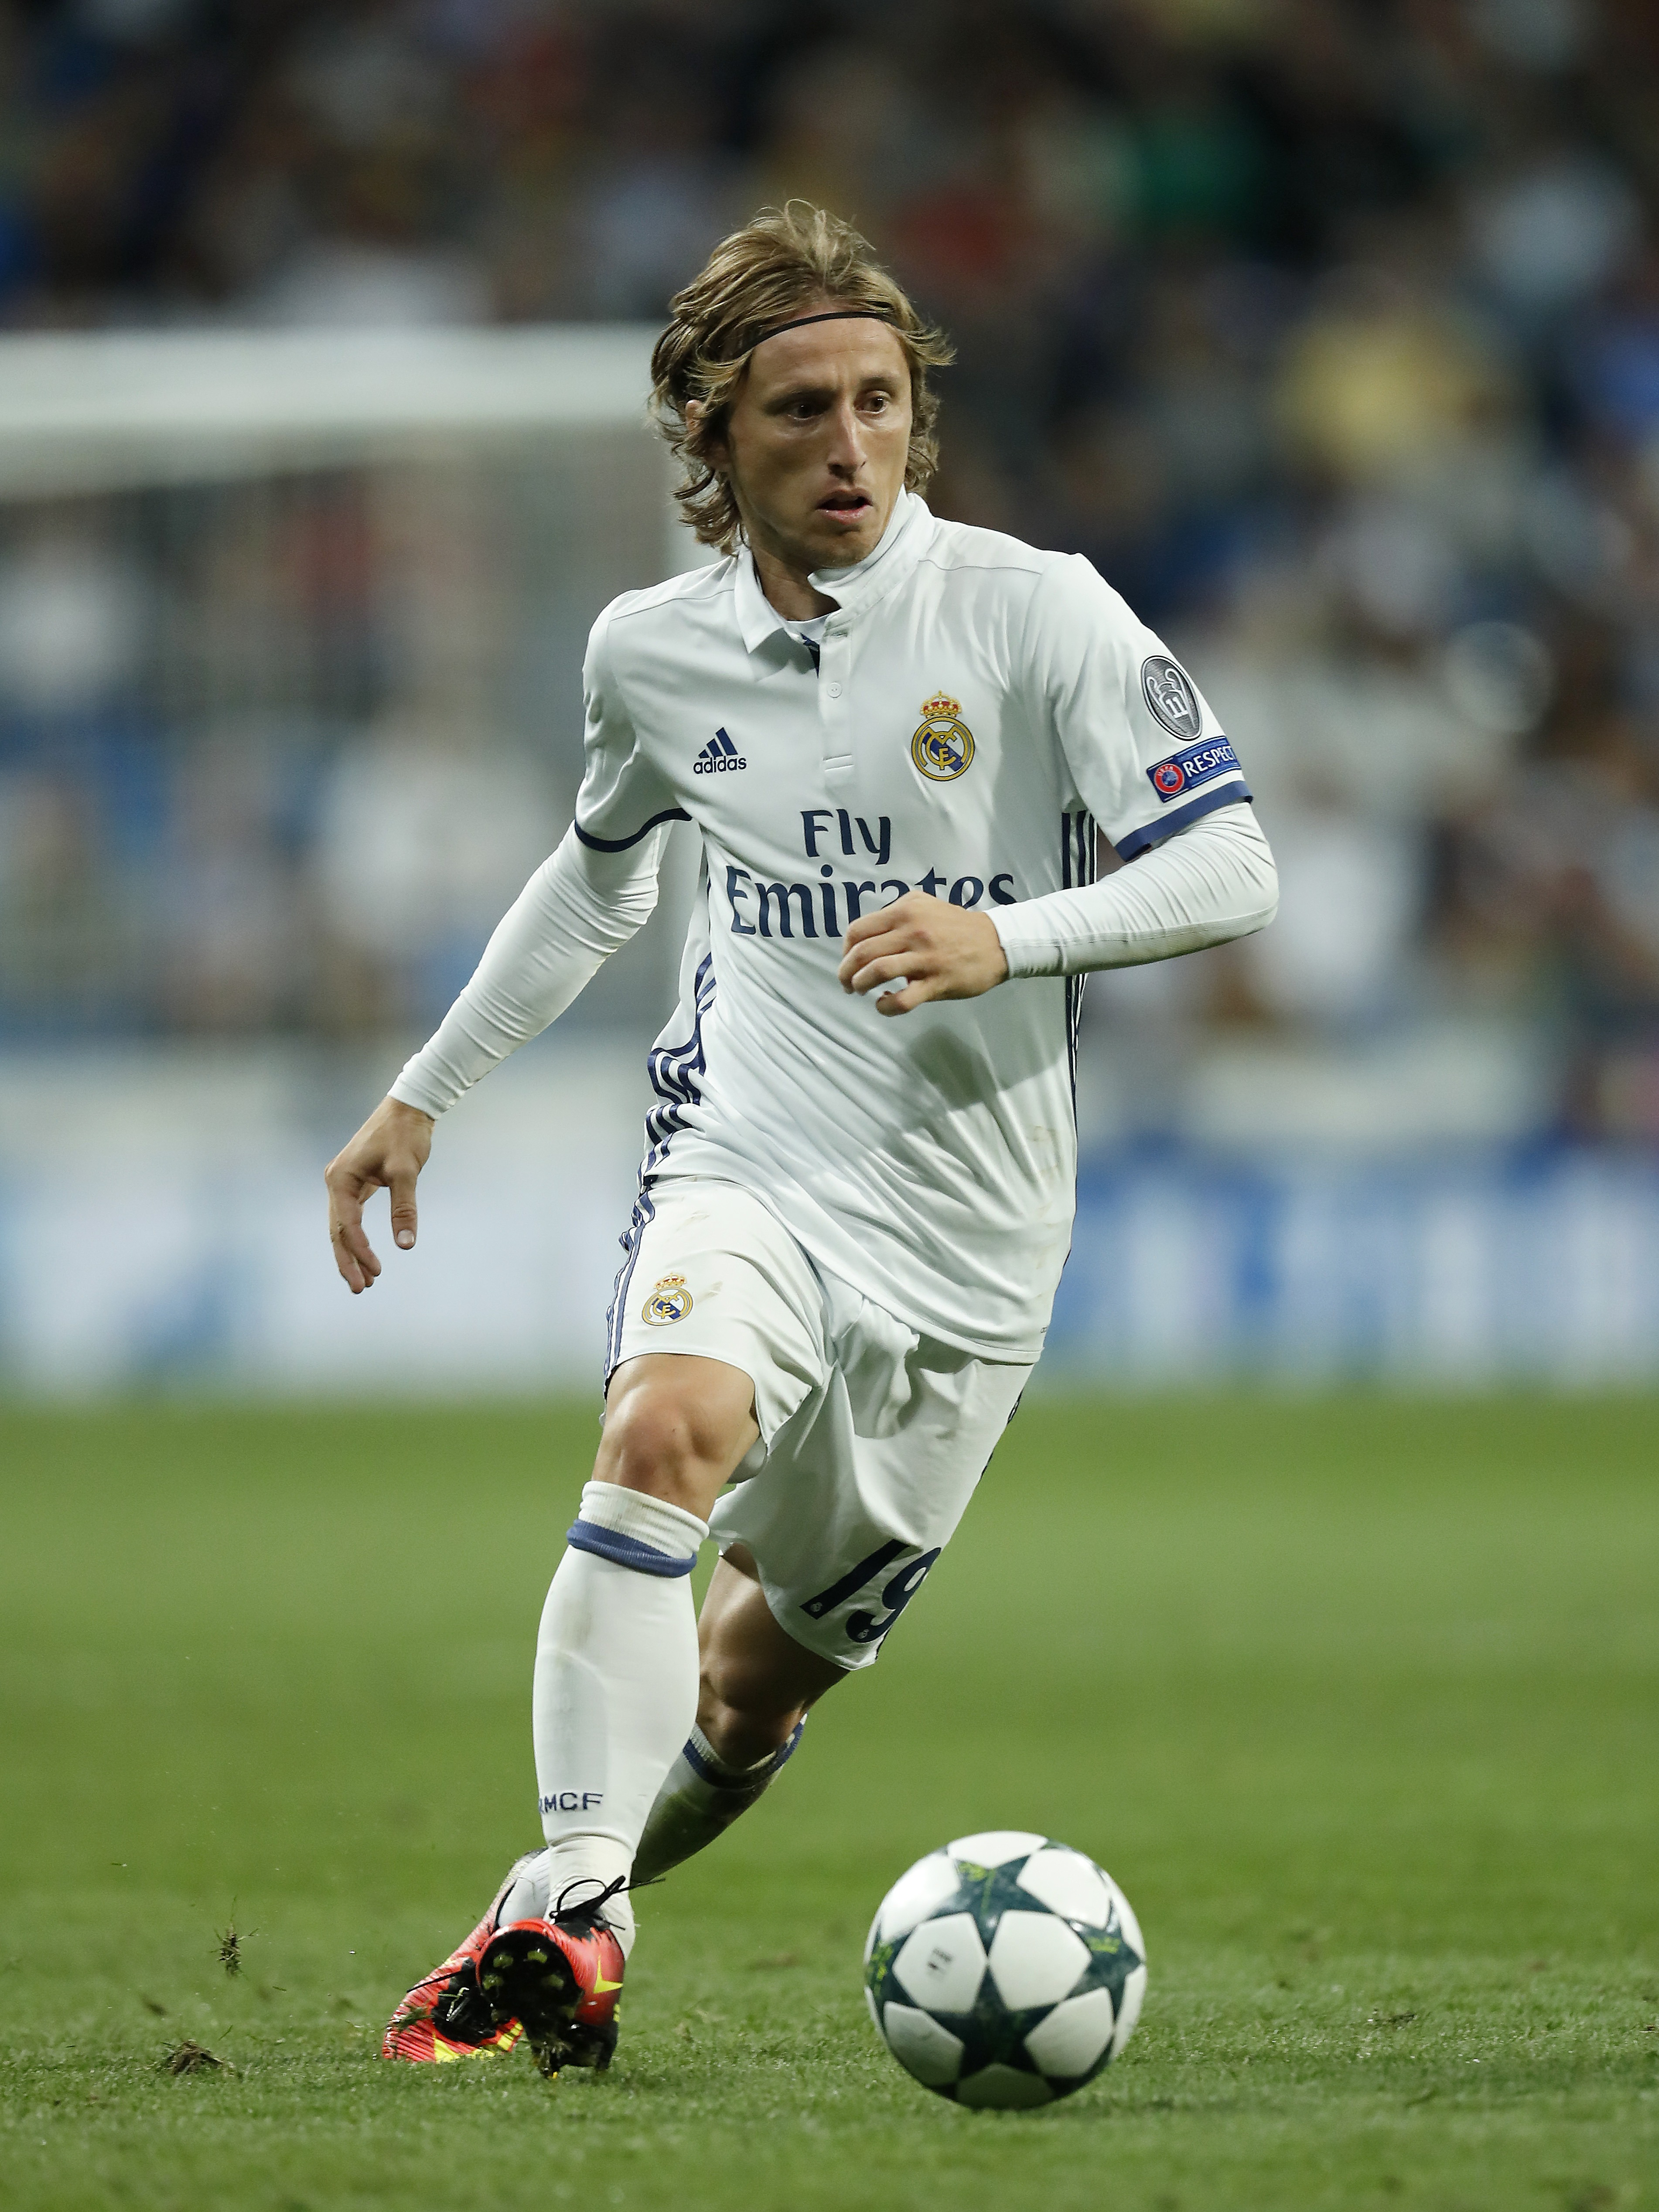 Luka Modric Signs Contract Extension Until 2020